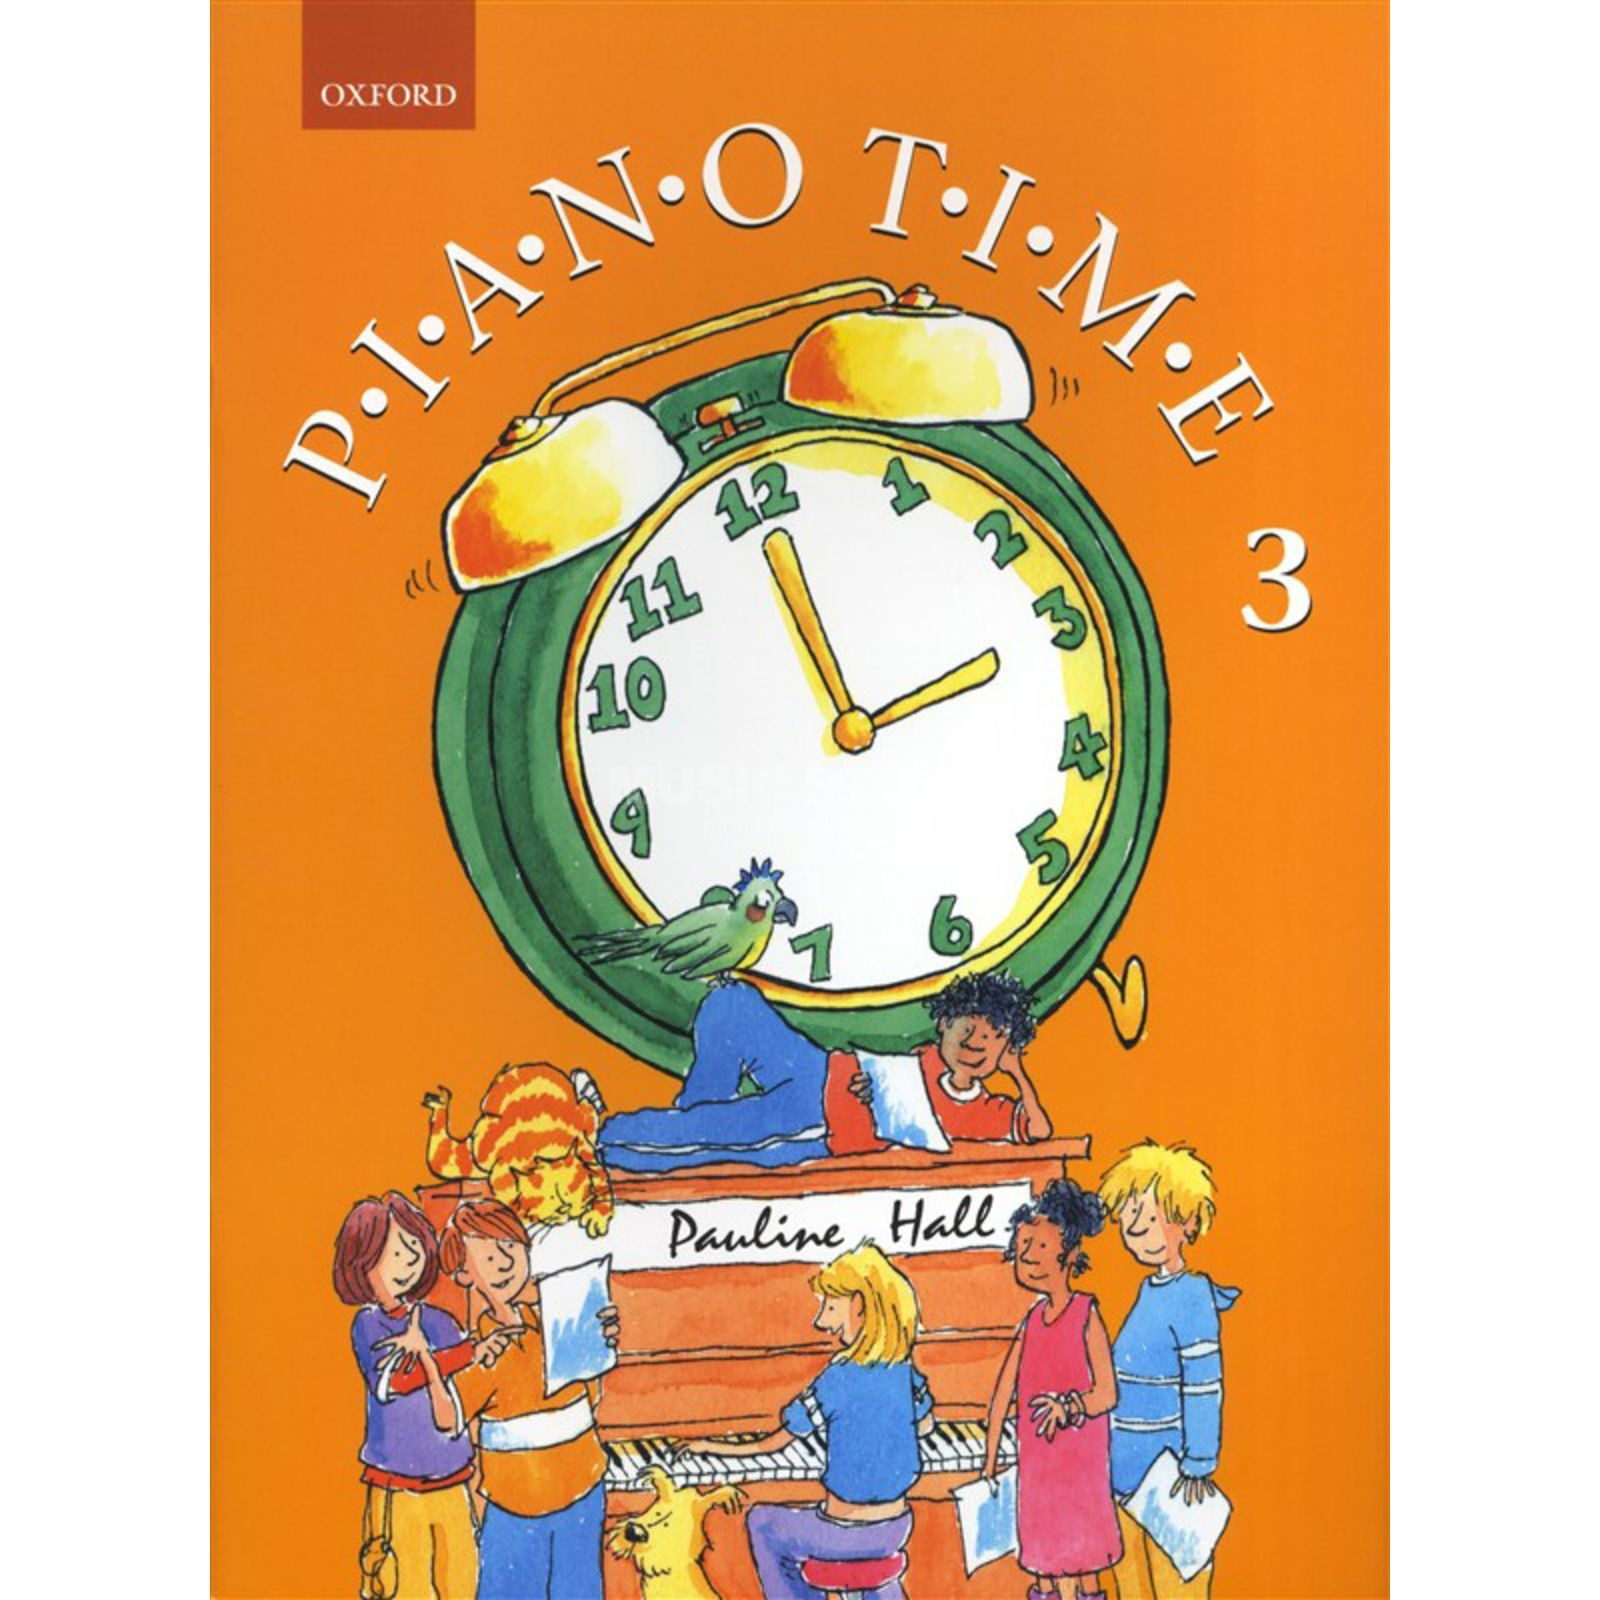 Oxford University Press Piano Time 3 Pauline Hall Produktbillede